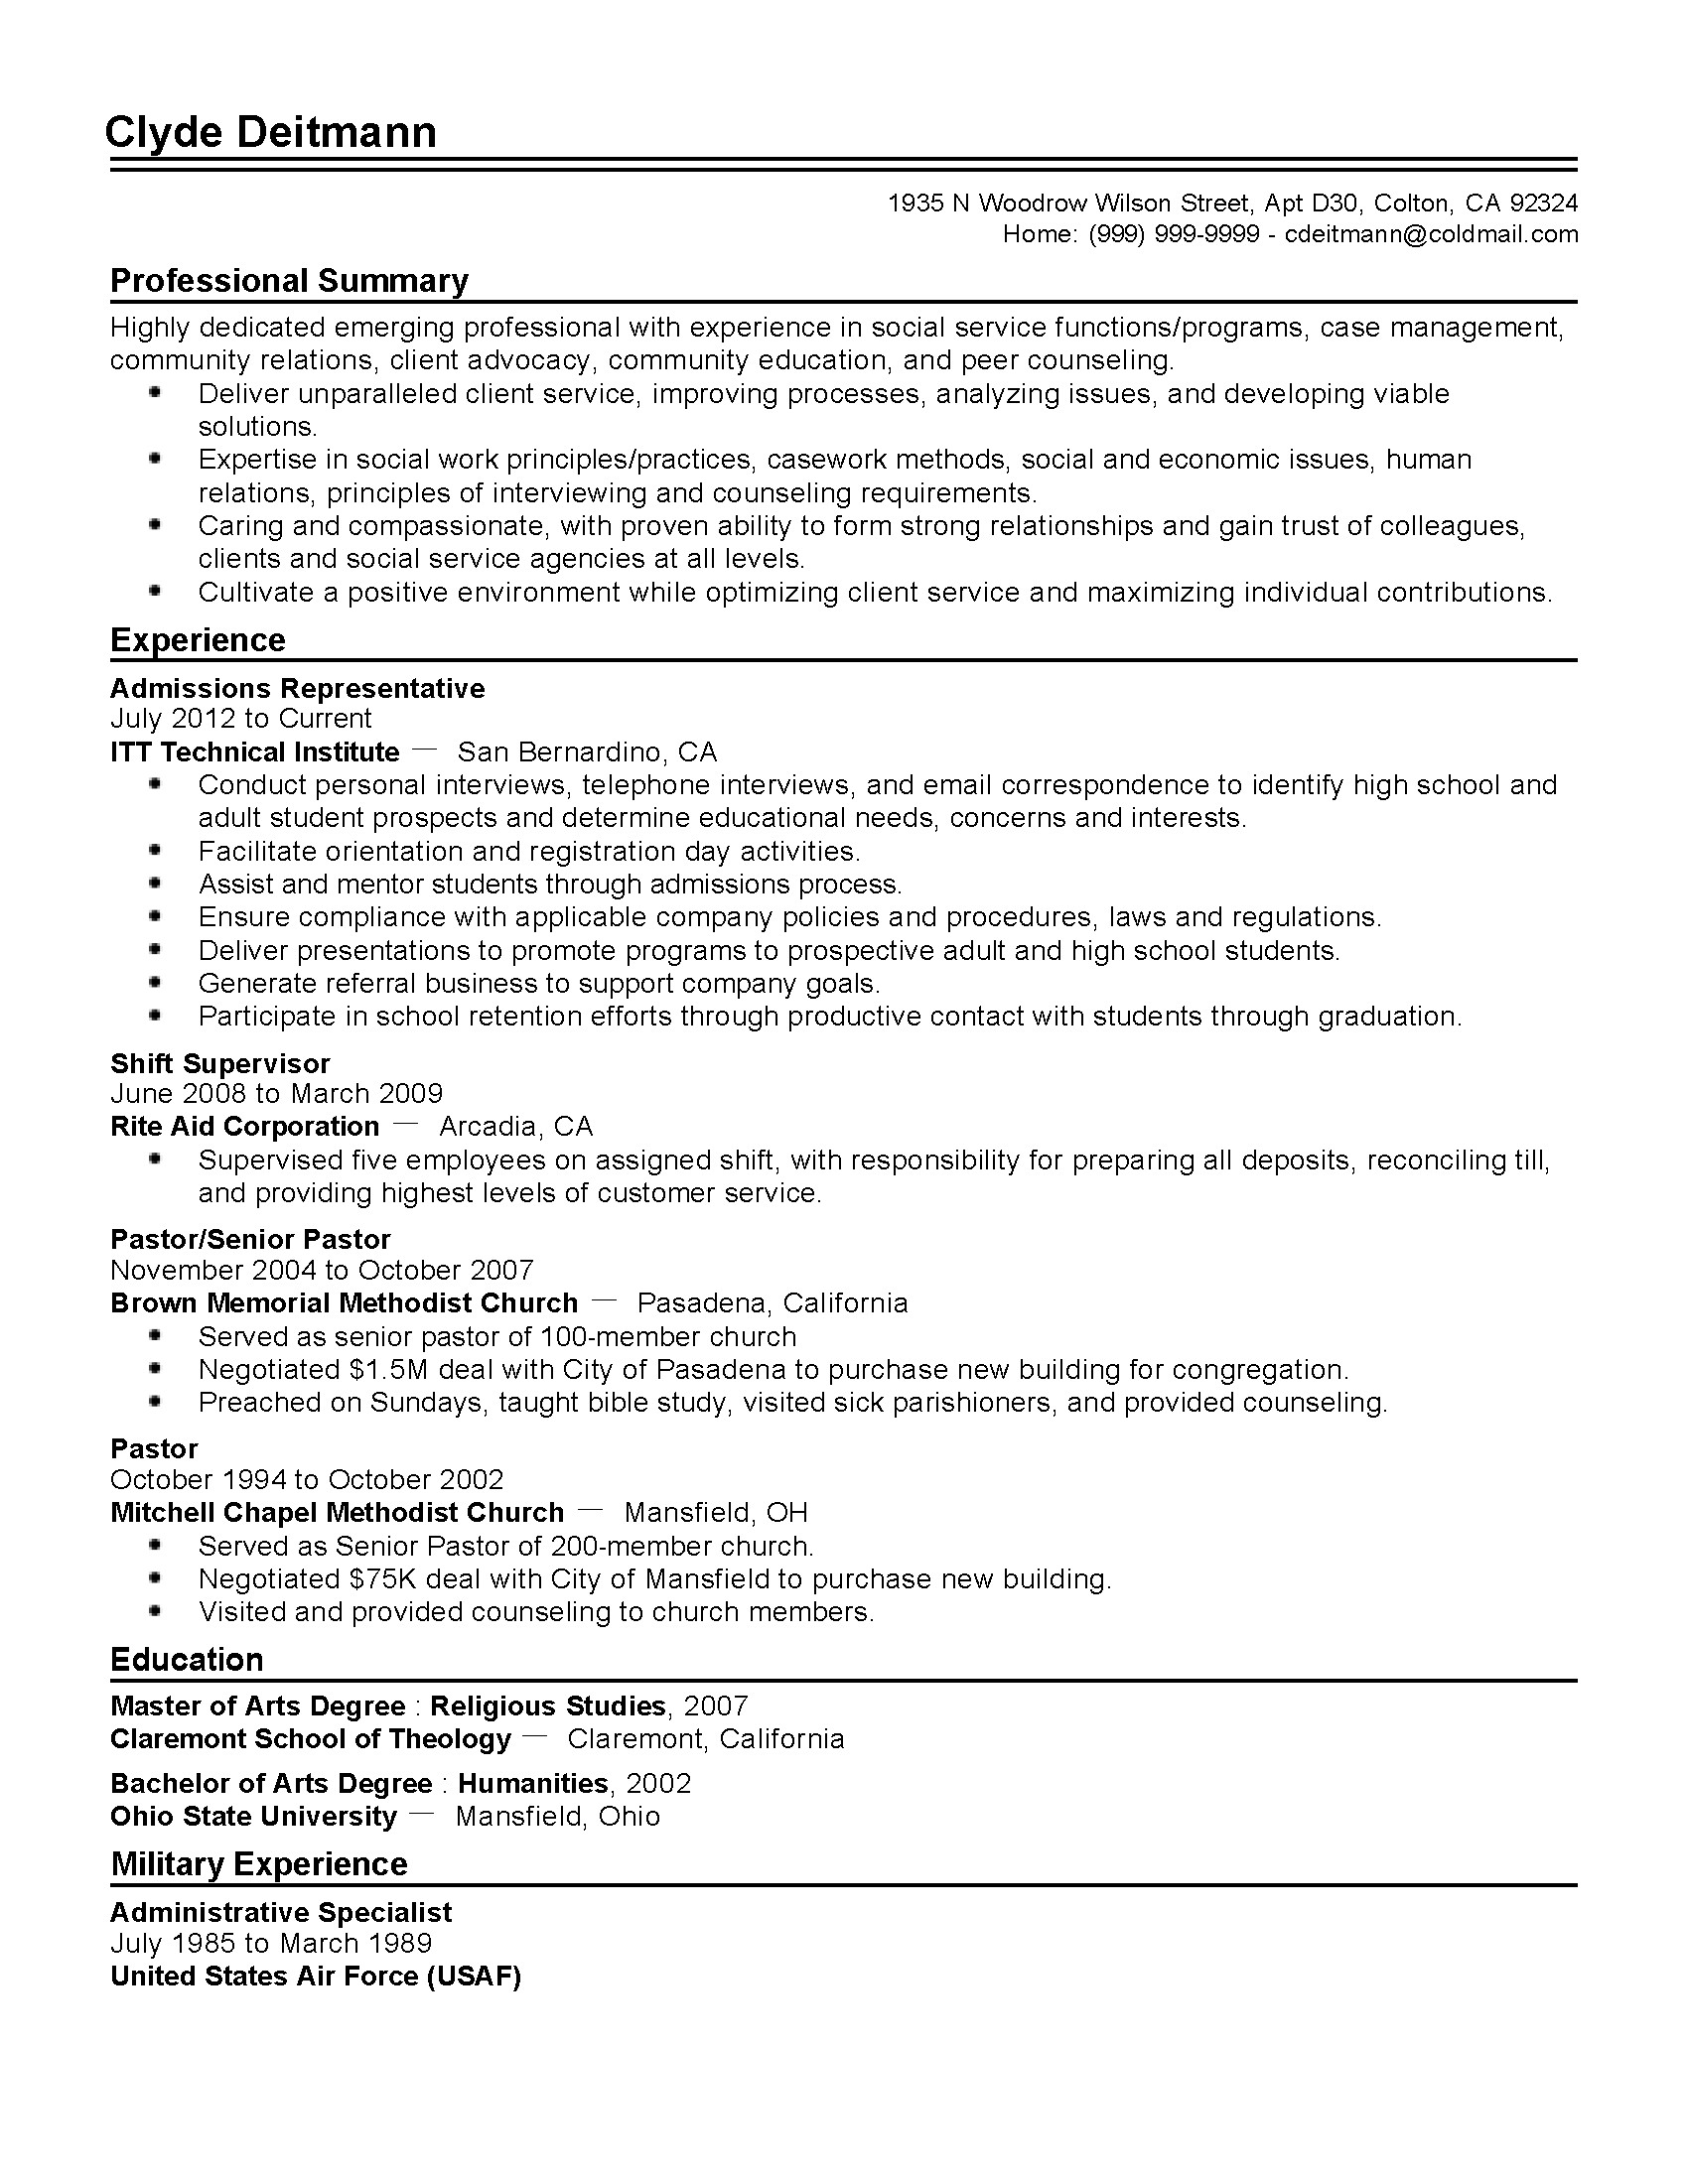 College Admissions Resume Templates Professional Admissions Representative Templates to